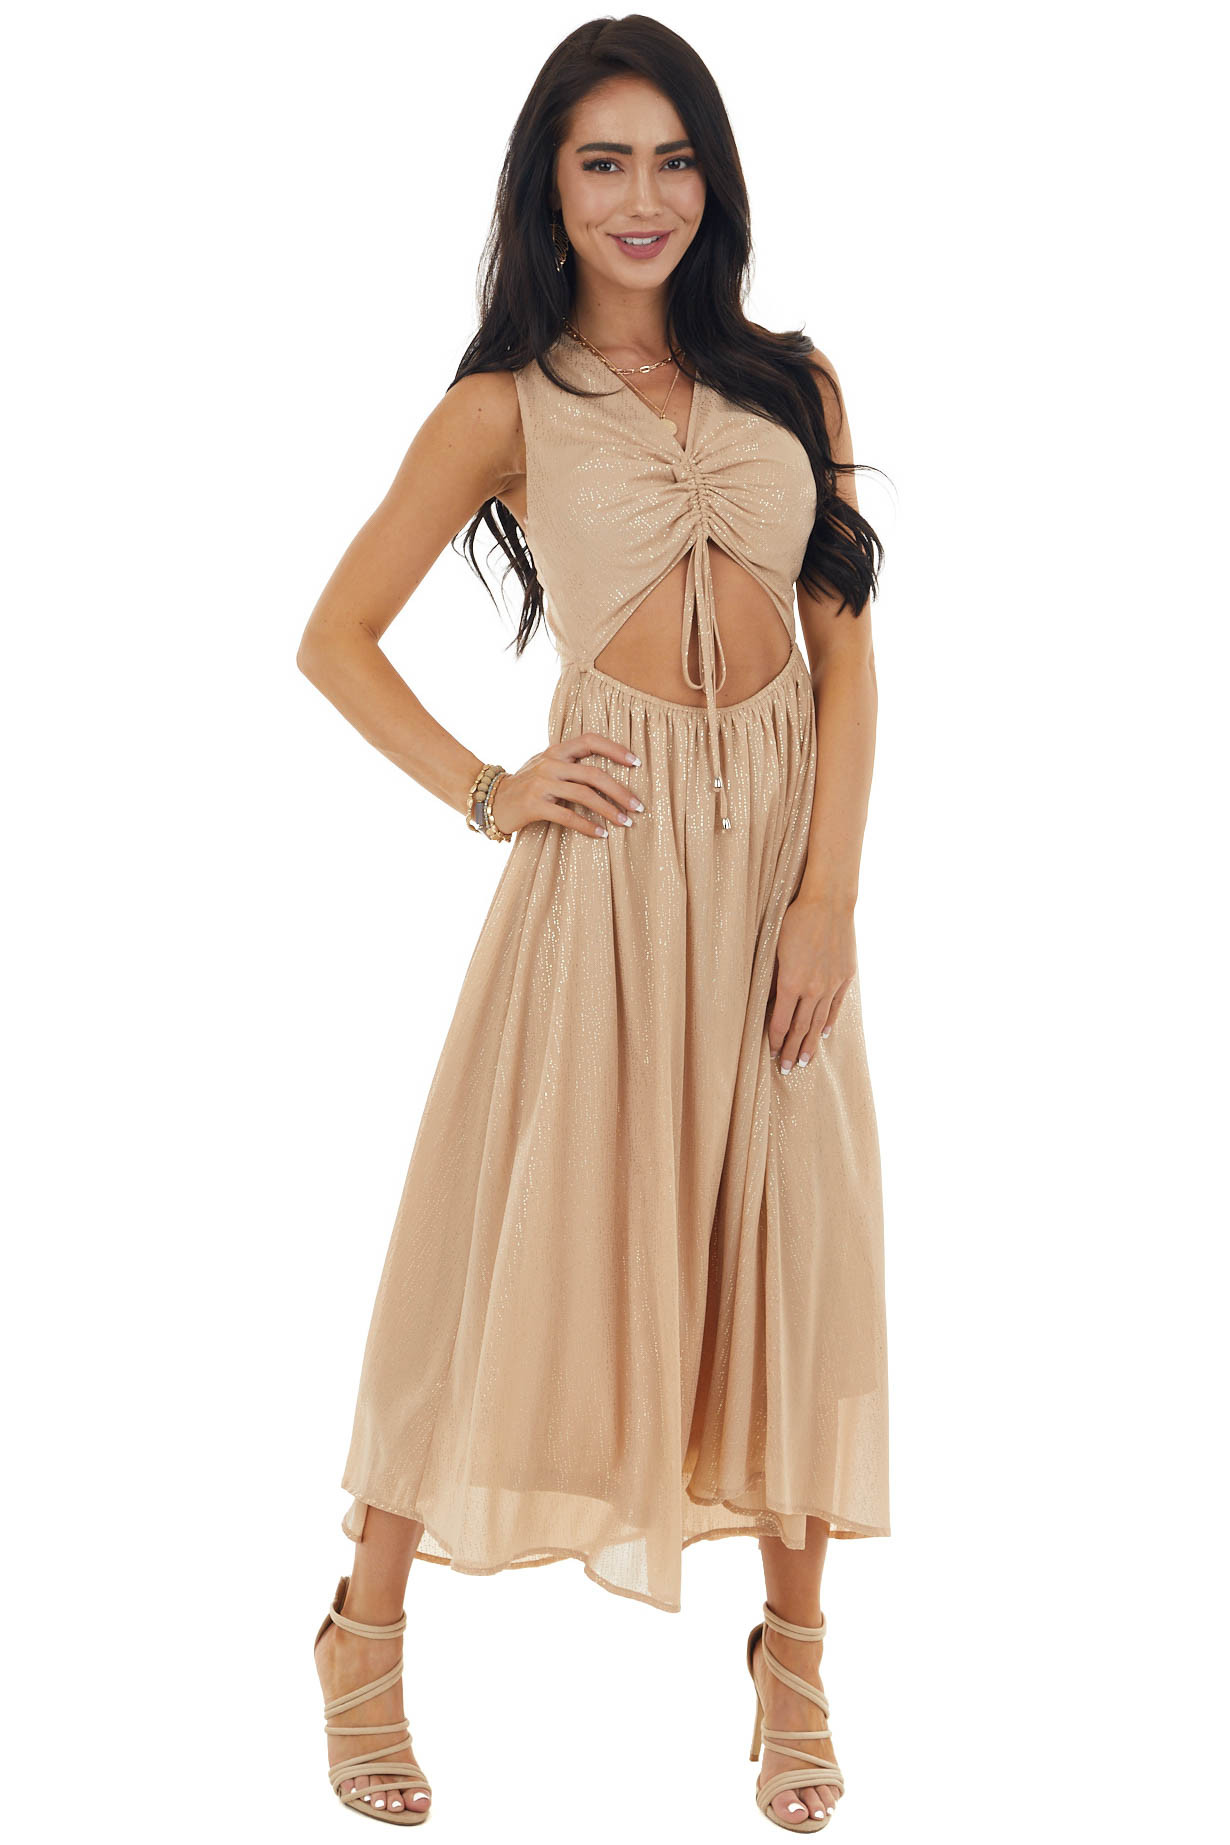 Champagne Glitter Sleeveless Midi Woven Dress with Cut Out